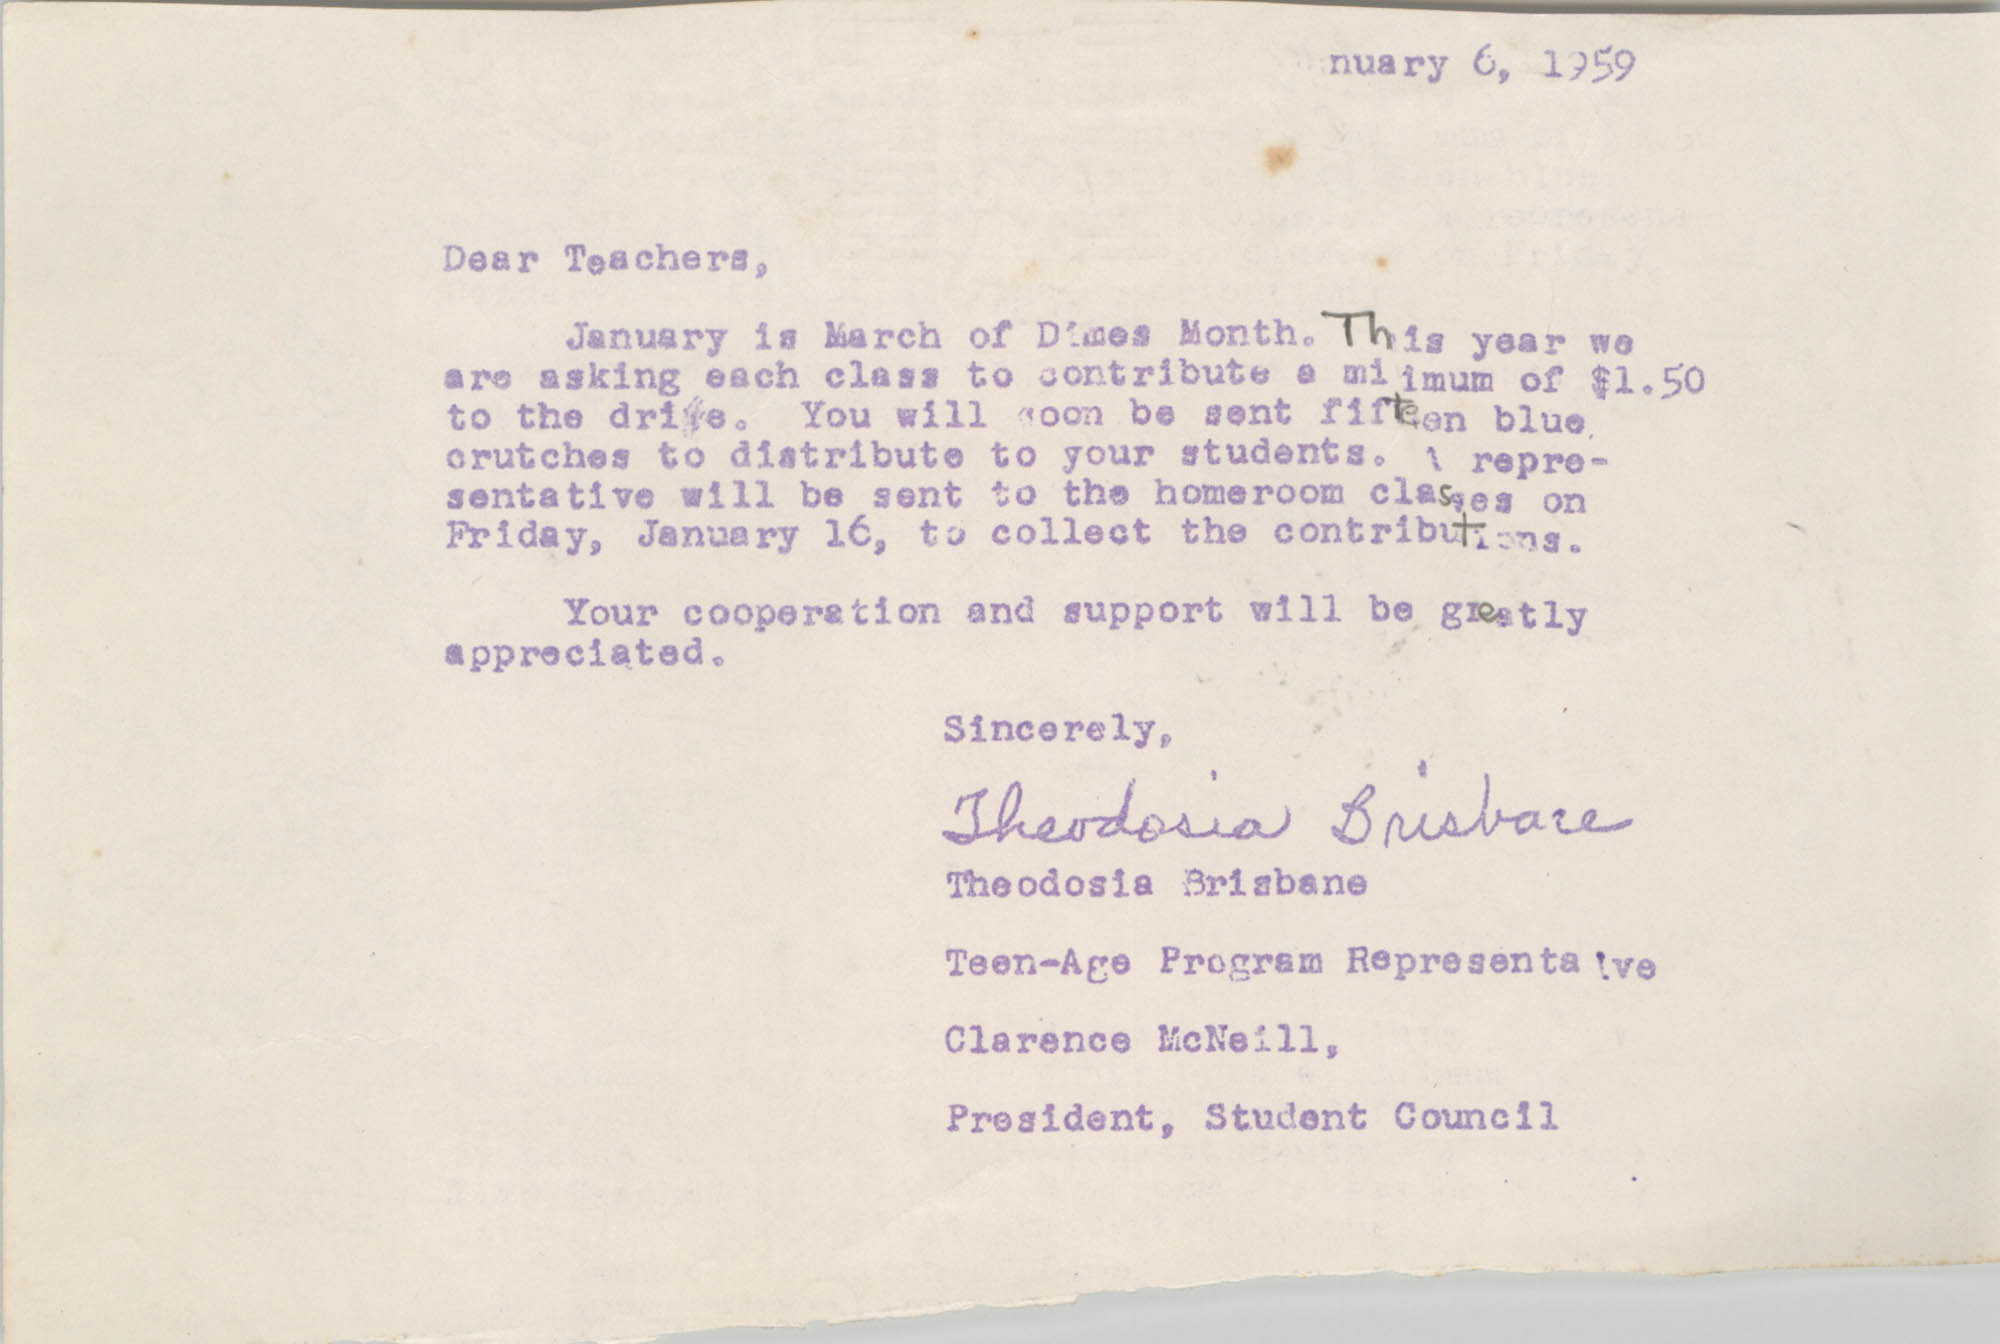 Message from Theodosia Brisbane to Burke High School Teachers, January 6, 1959